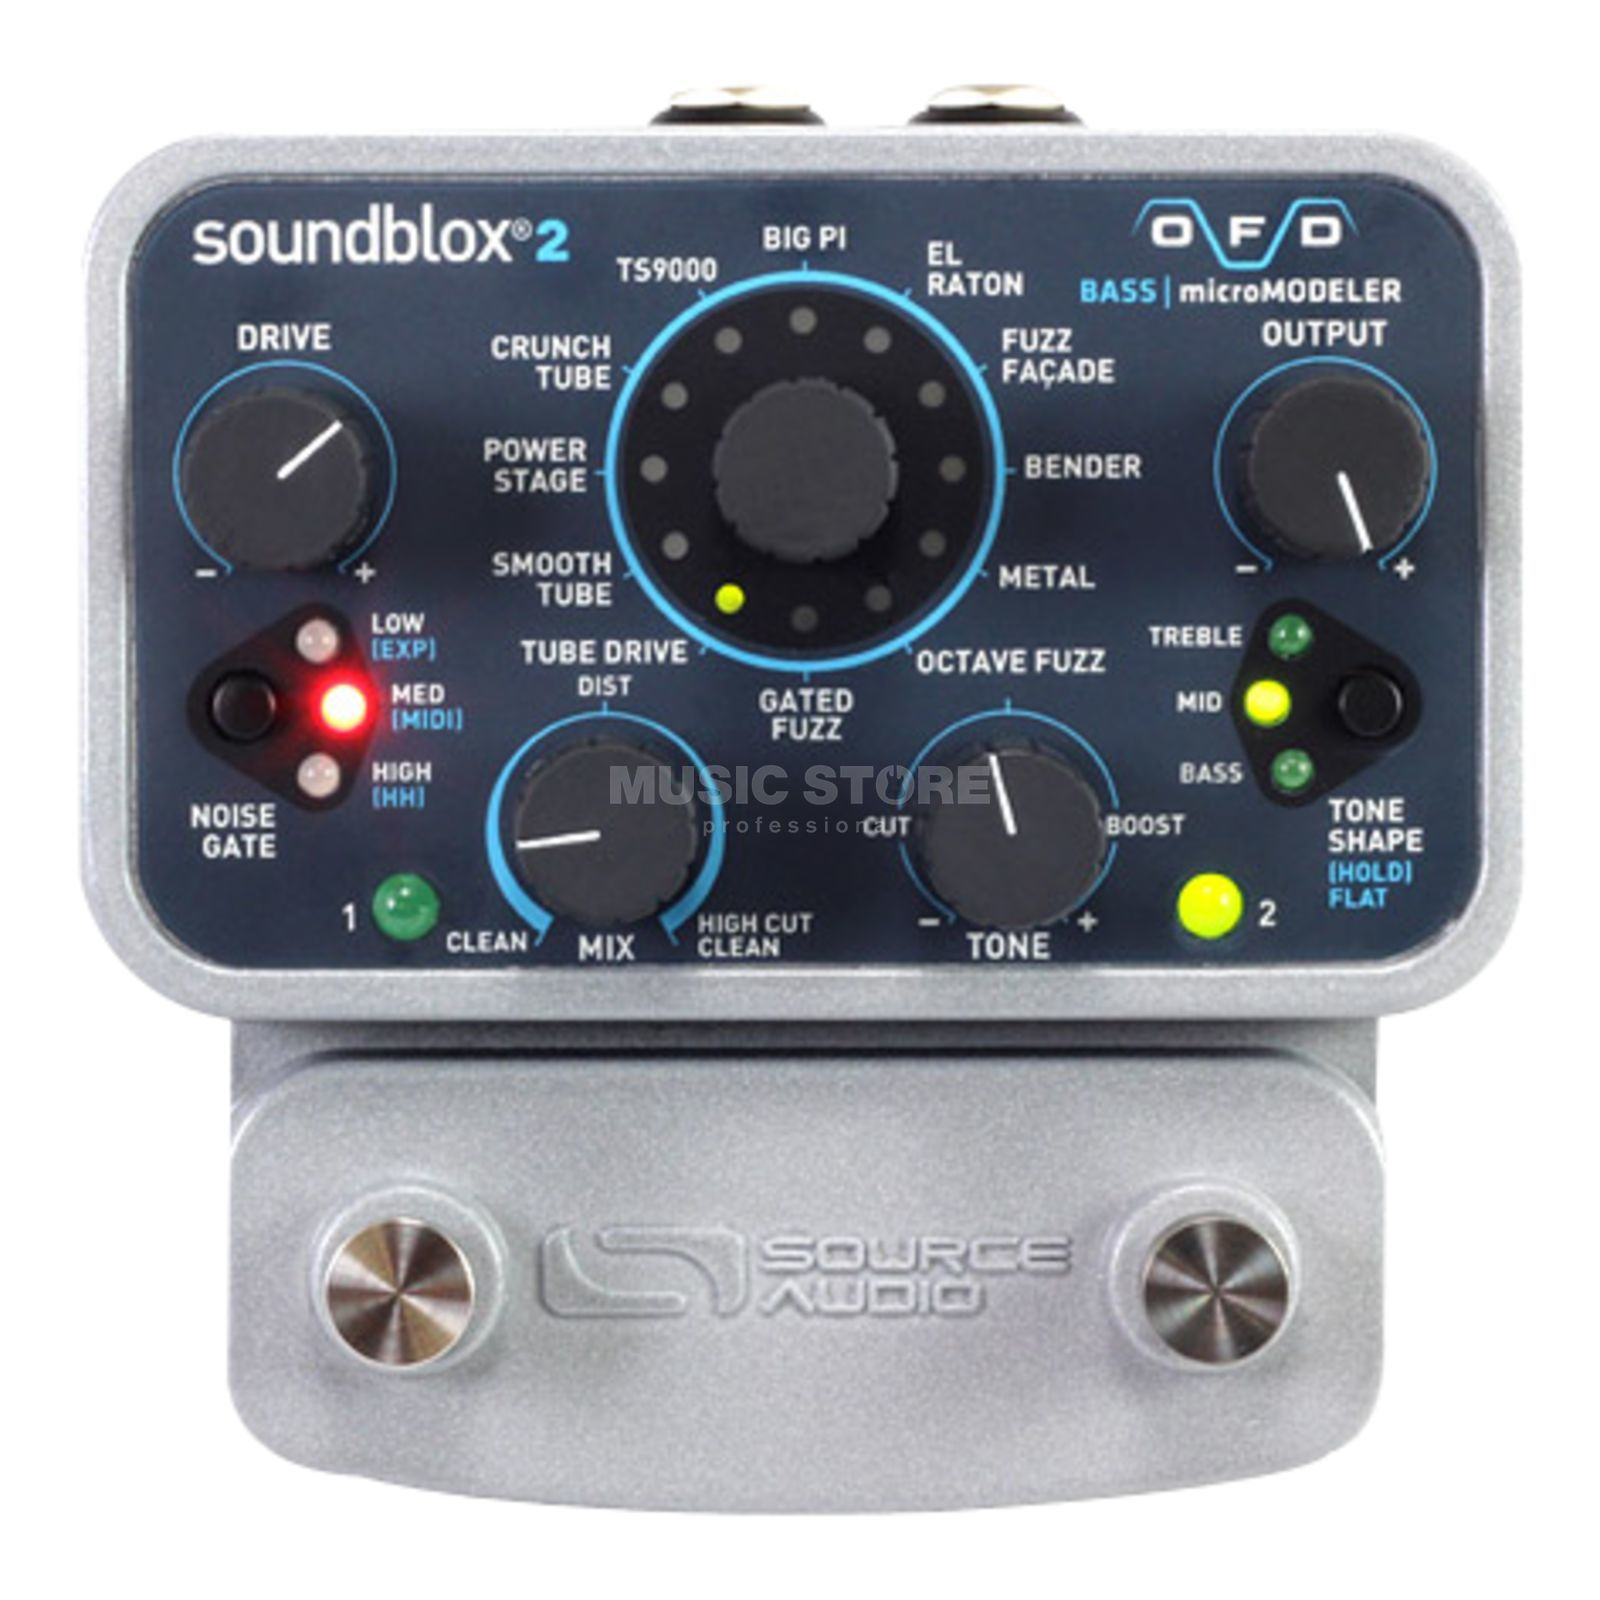 Source Audio Soundblox 2 OFD Bass microModeler Produktbild